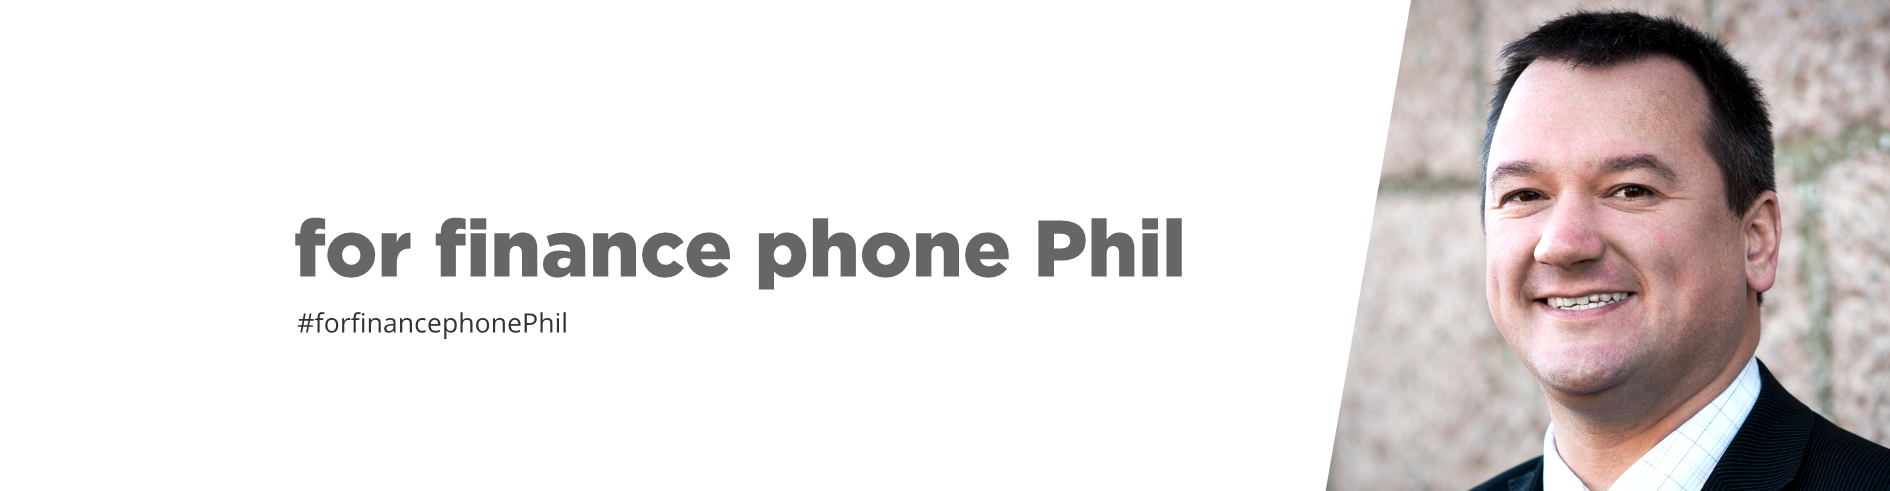 Phil Anderson Financial Services About